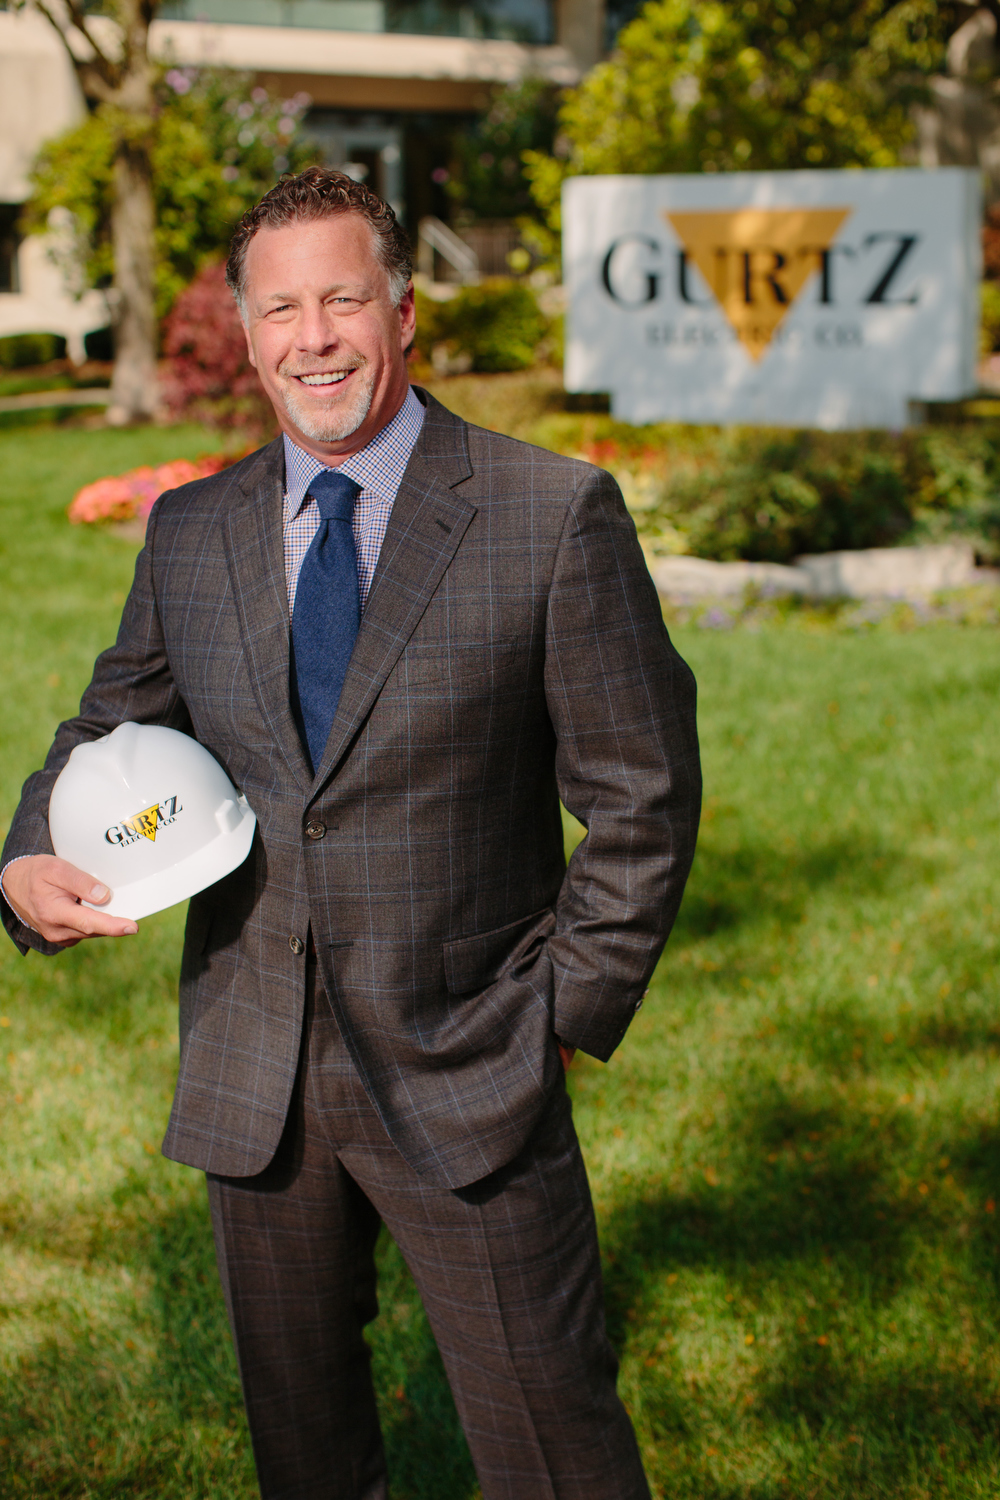 Outdoor Construction Executive Portrait